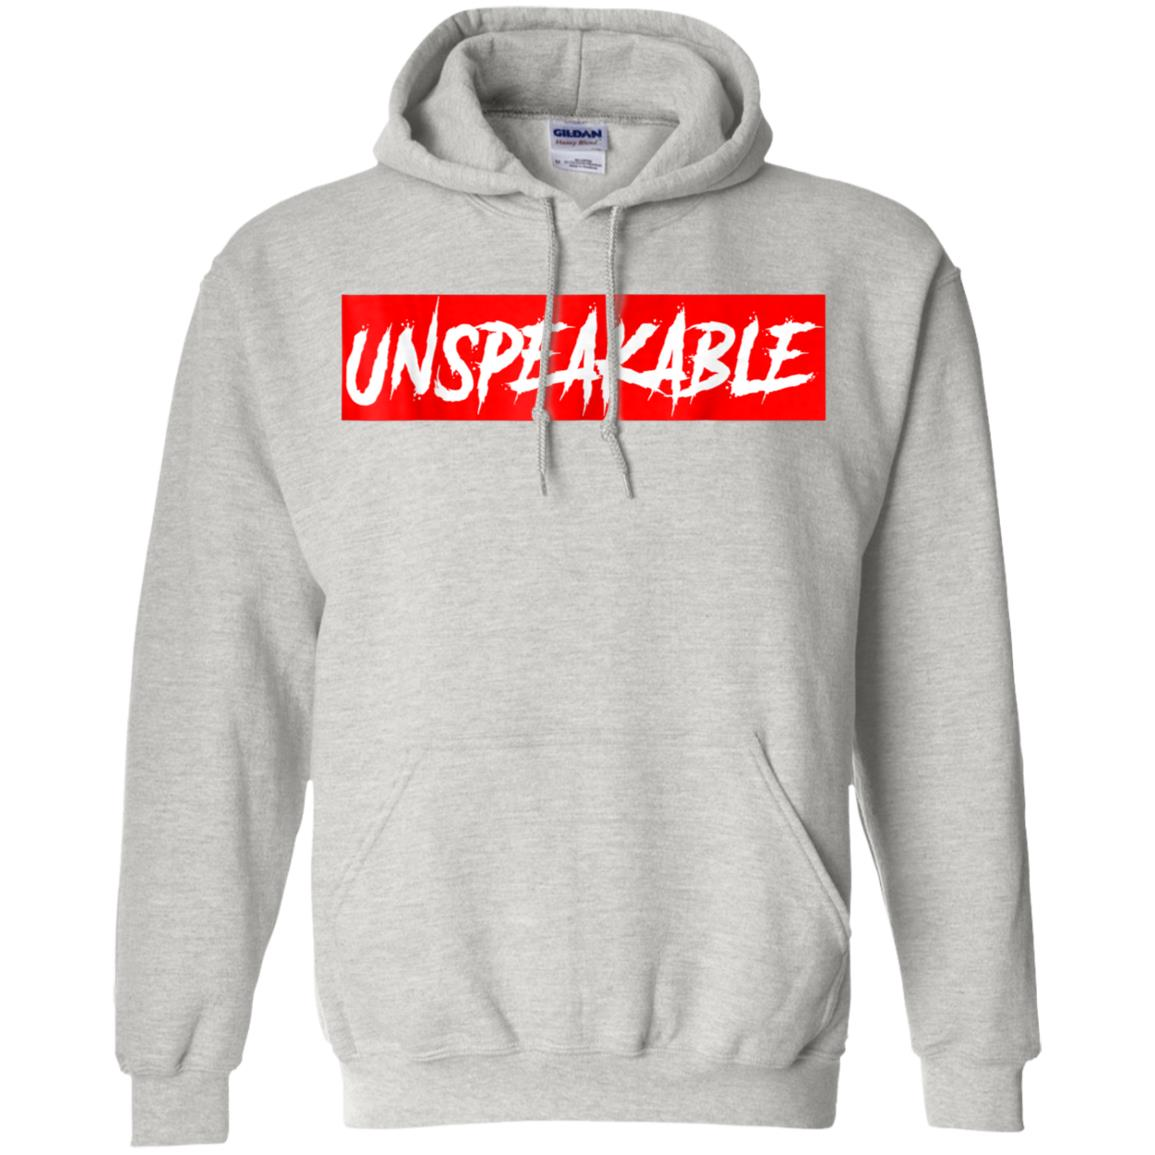 Unspeakable Shirt For Kids With Red Box Hoodie